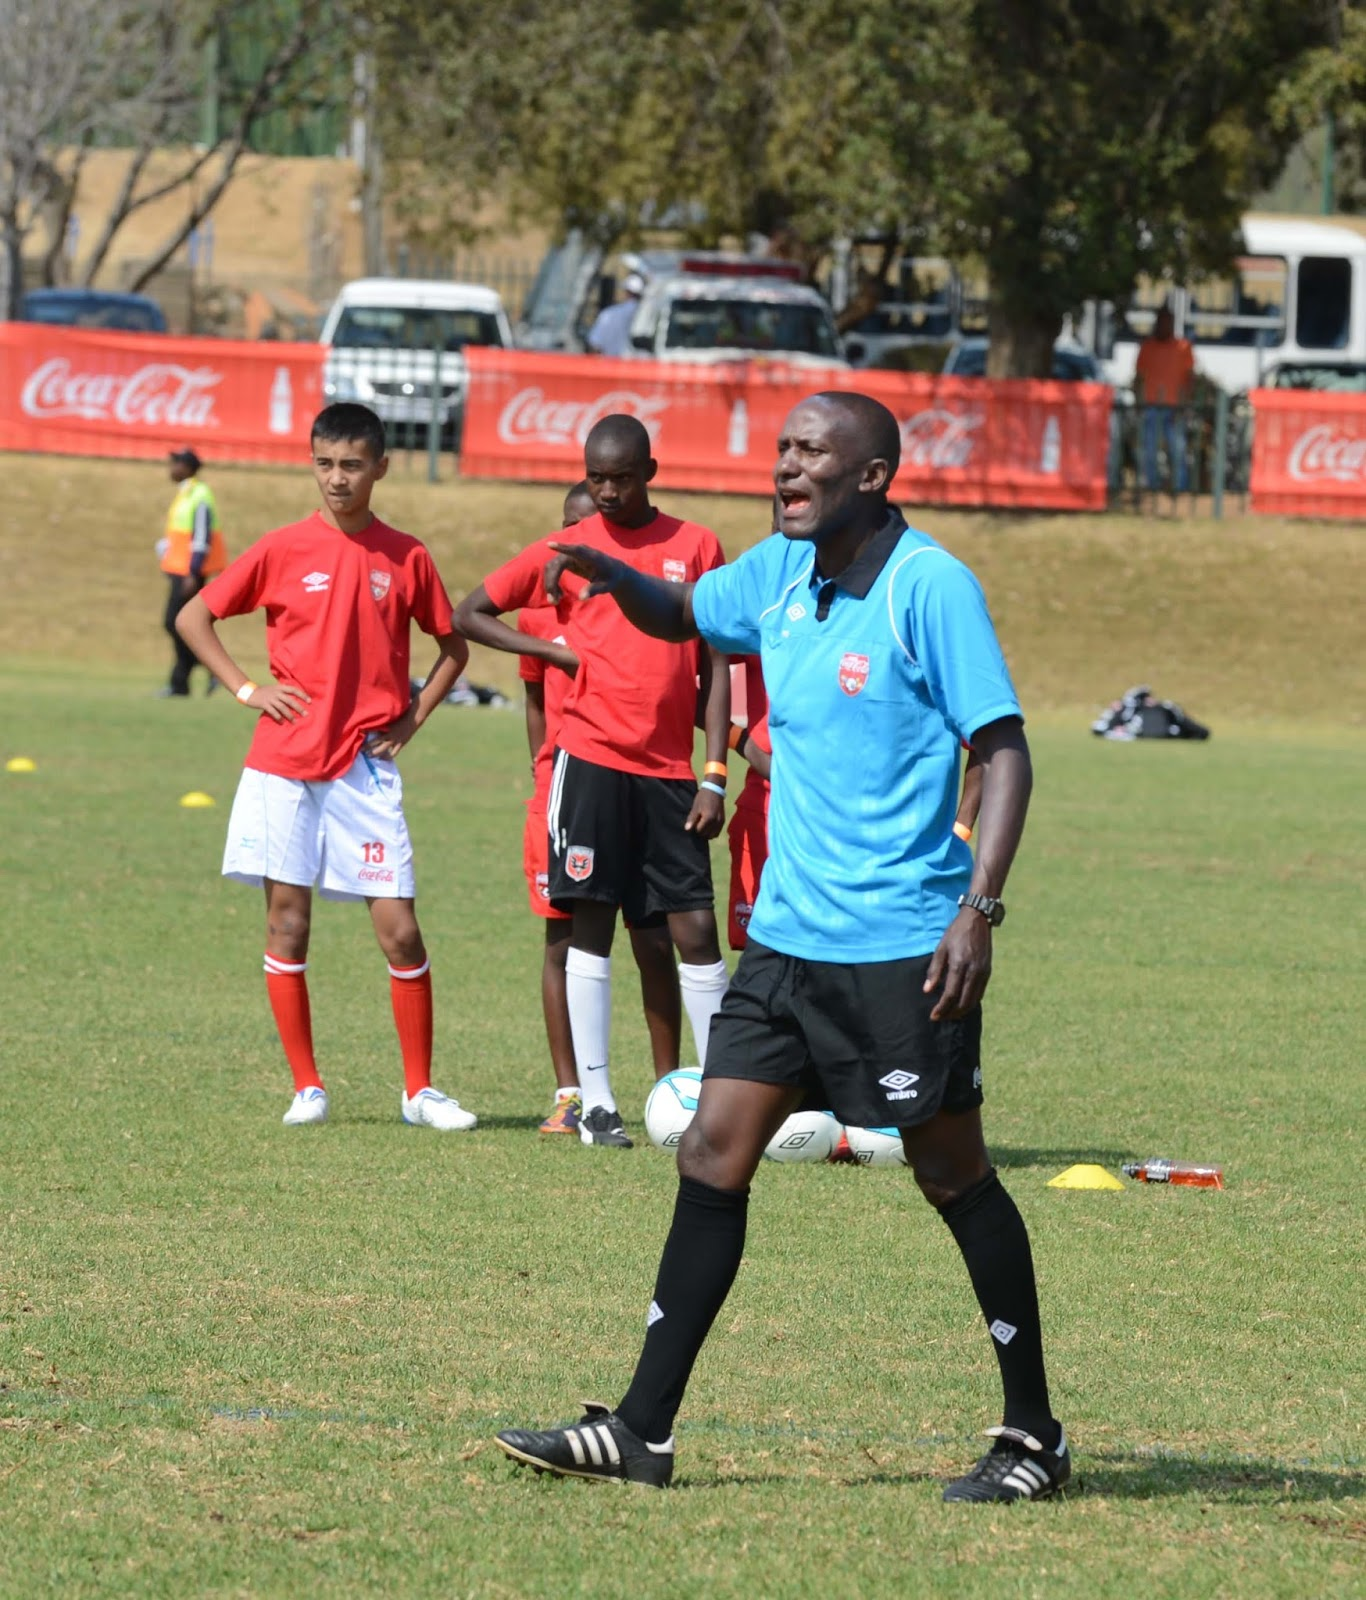 Kenyan side Gor Mahia incensed at Kaizer Chiefs for player tapping